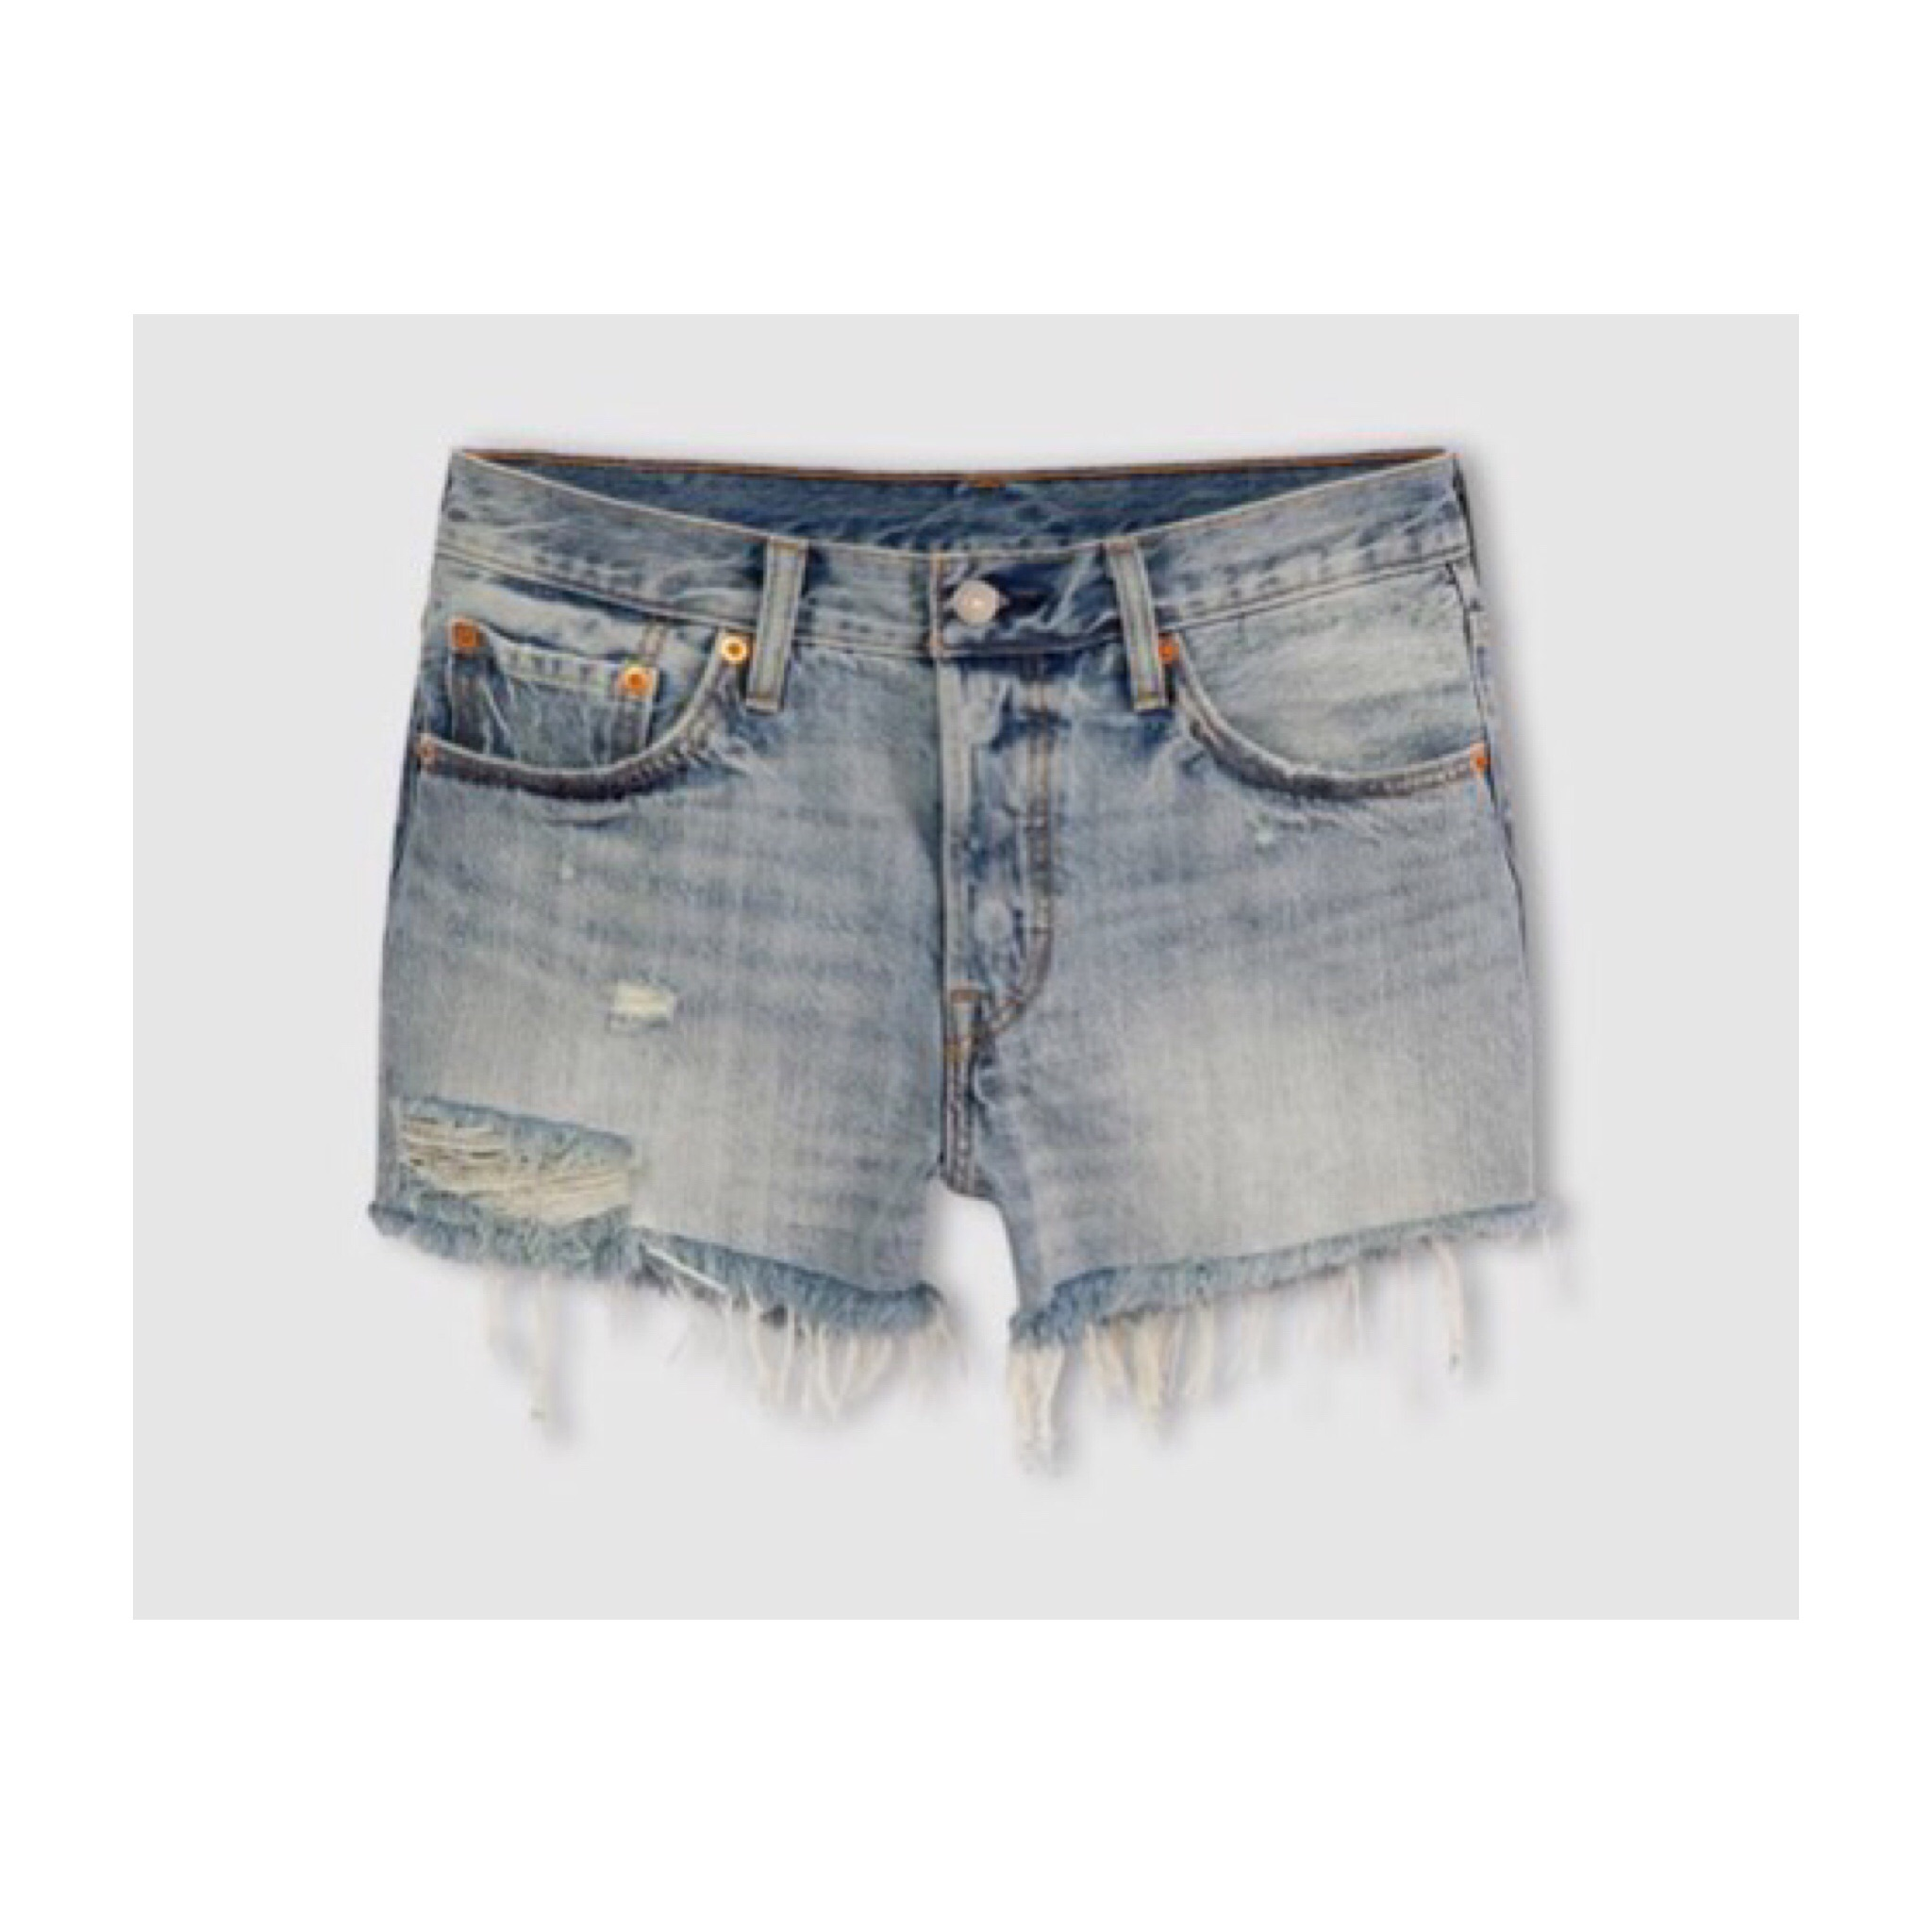 Levi's cut off shorts ... Denim shorts are a summer staple, these Levi denim shorts go with everything. I got mine from La Redoute.